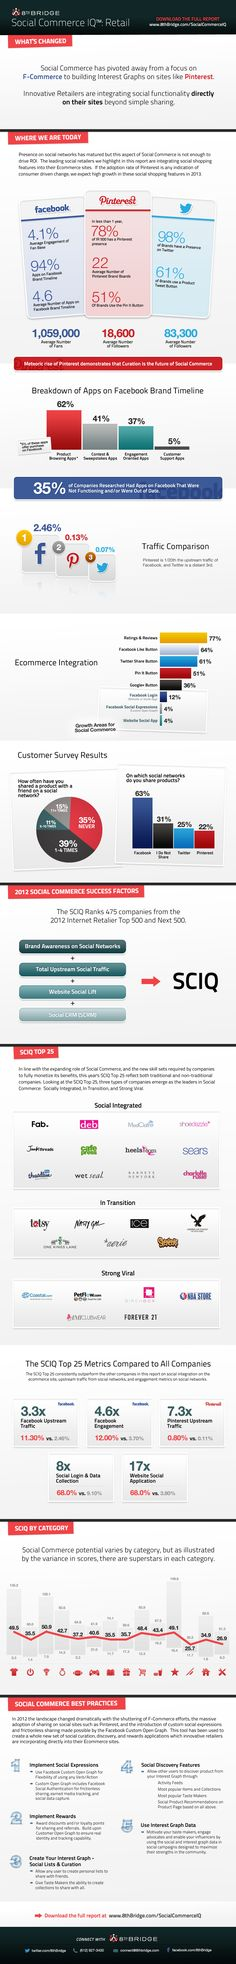 The State Of Social Commerce 2012 [INFOGRAPHIC]